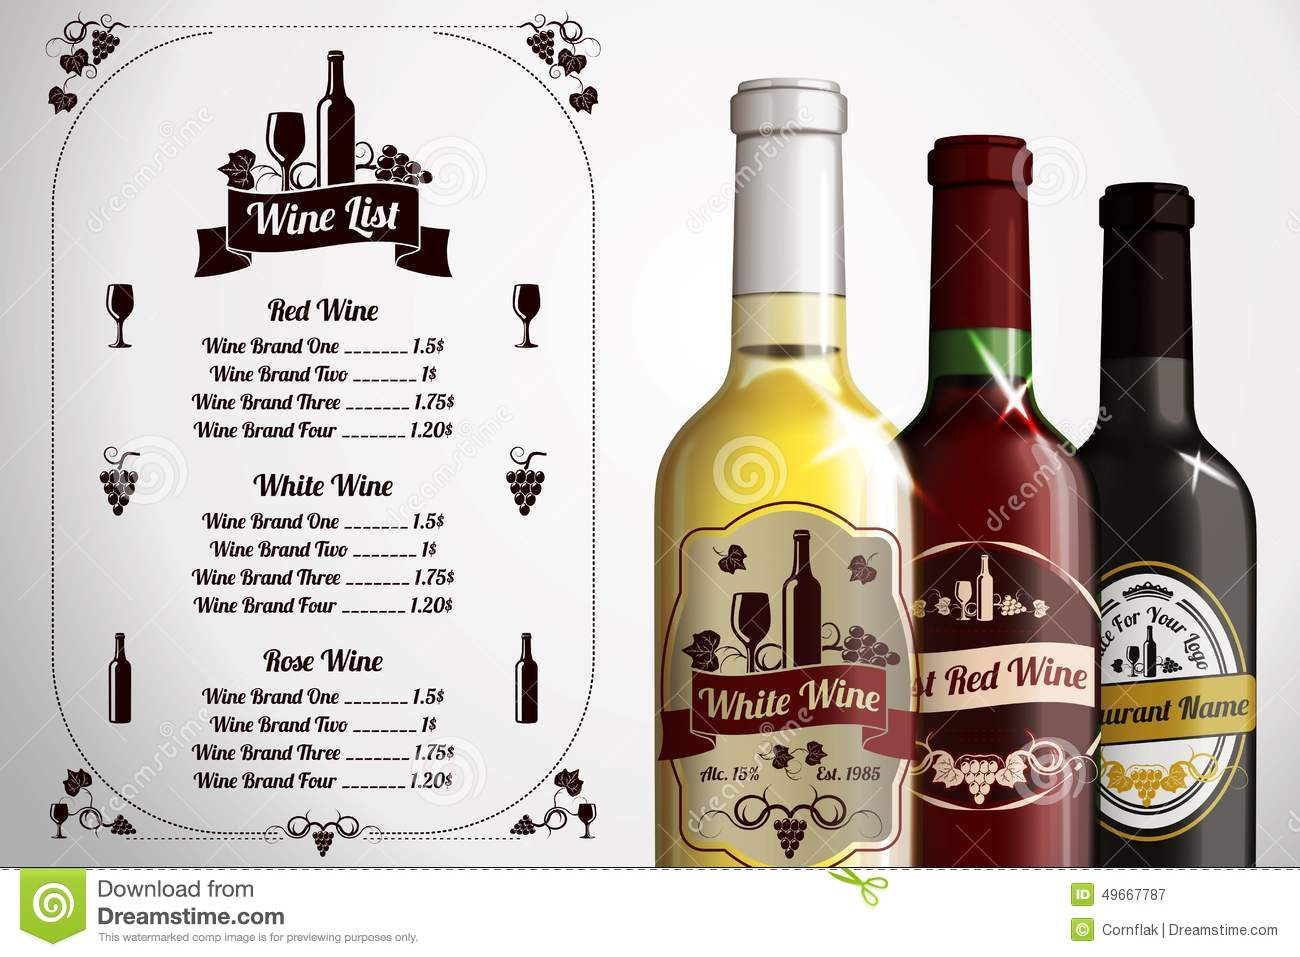 liquor label template - Gidiye.redformapolitica.co